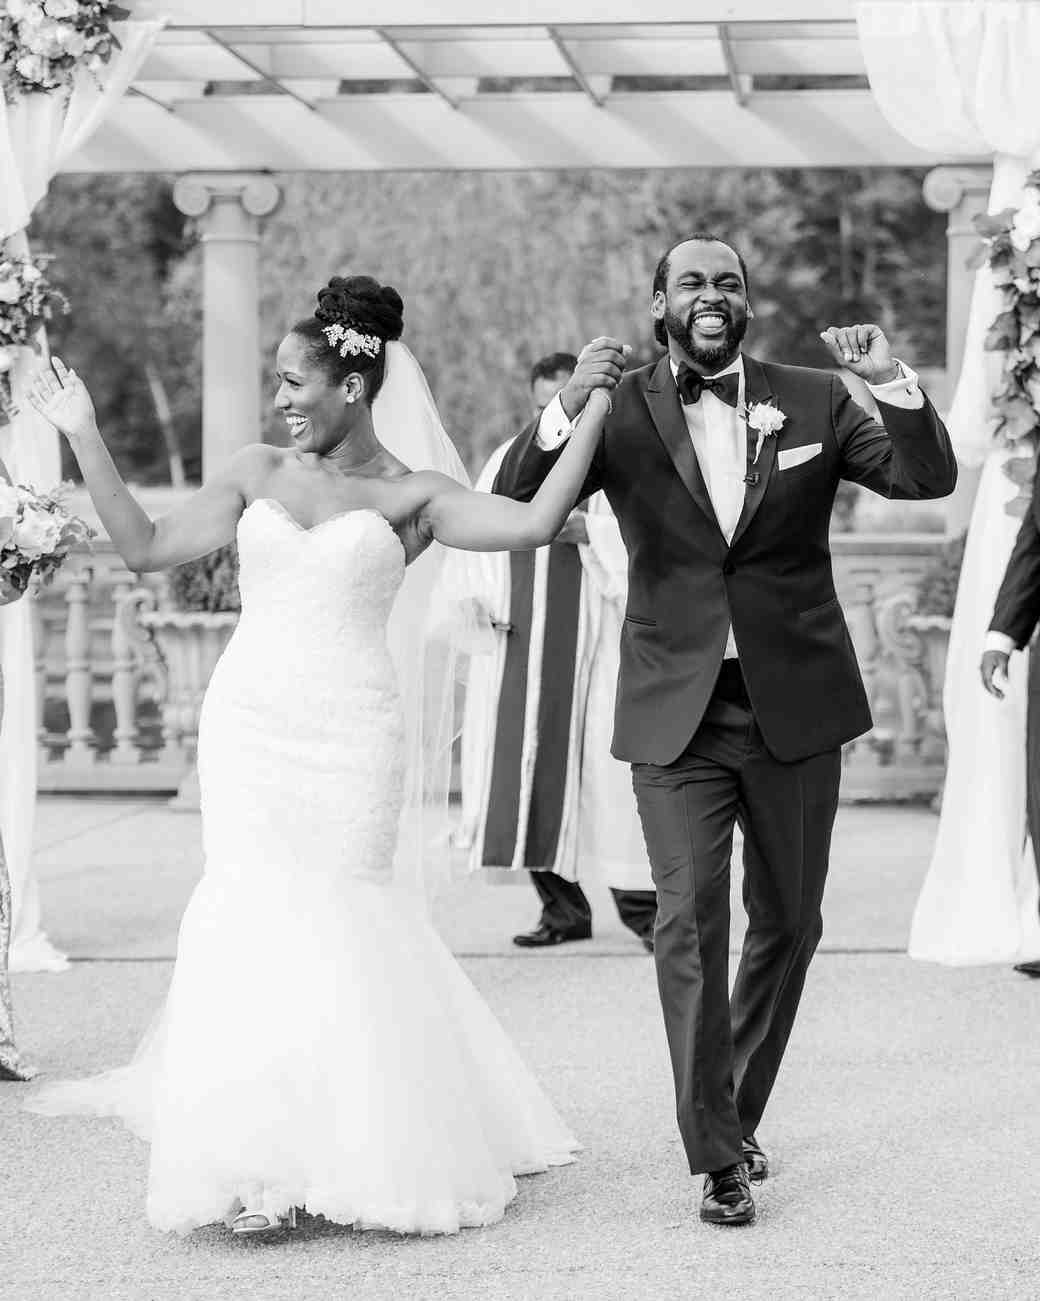 kenisha wendall wedding couple ceremony just married